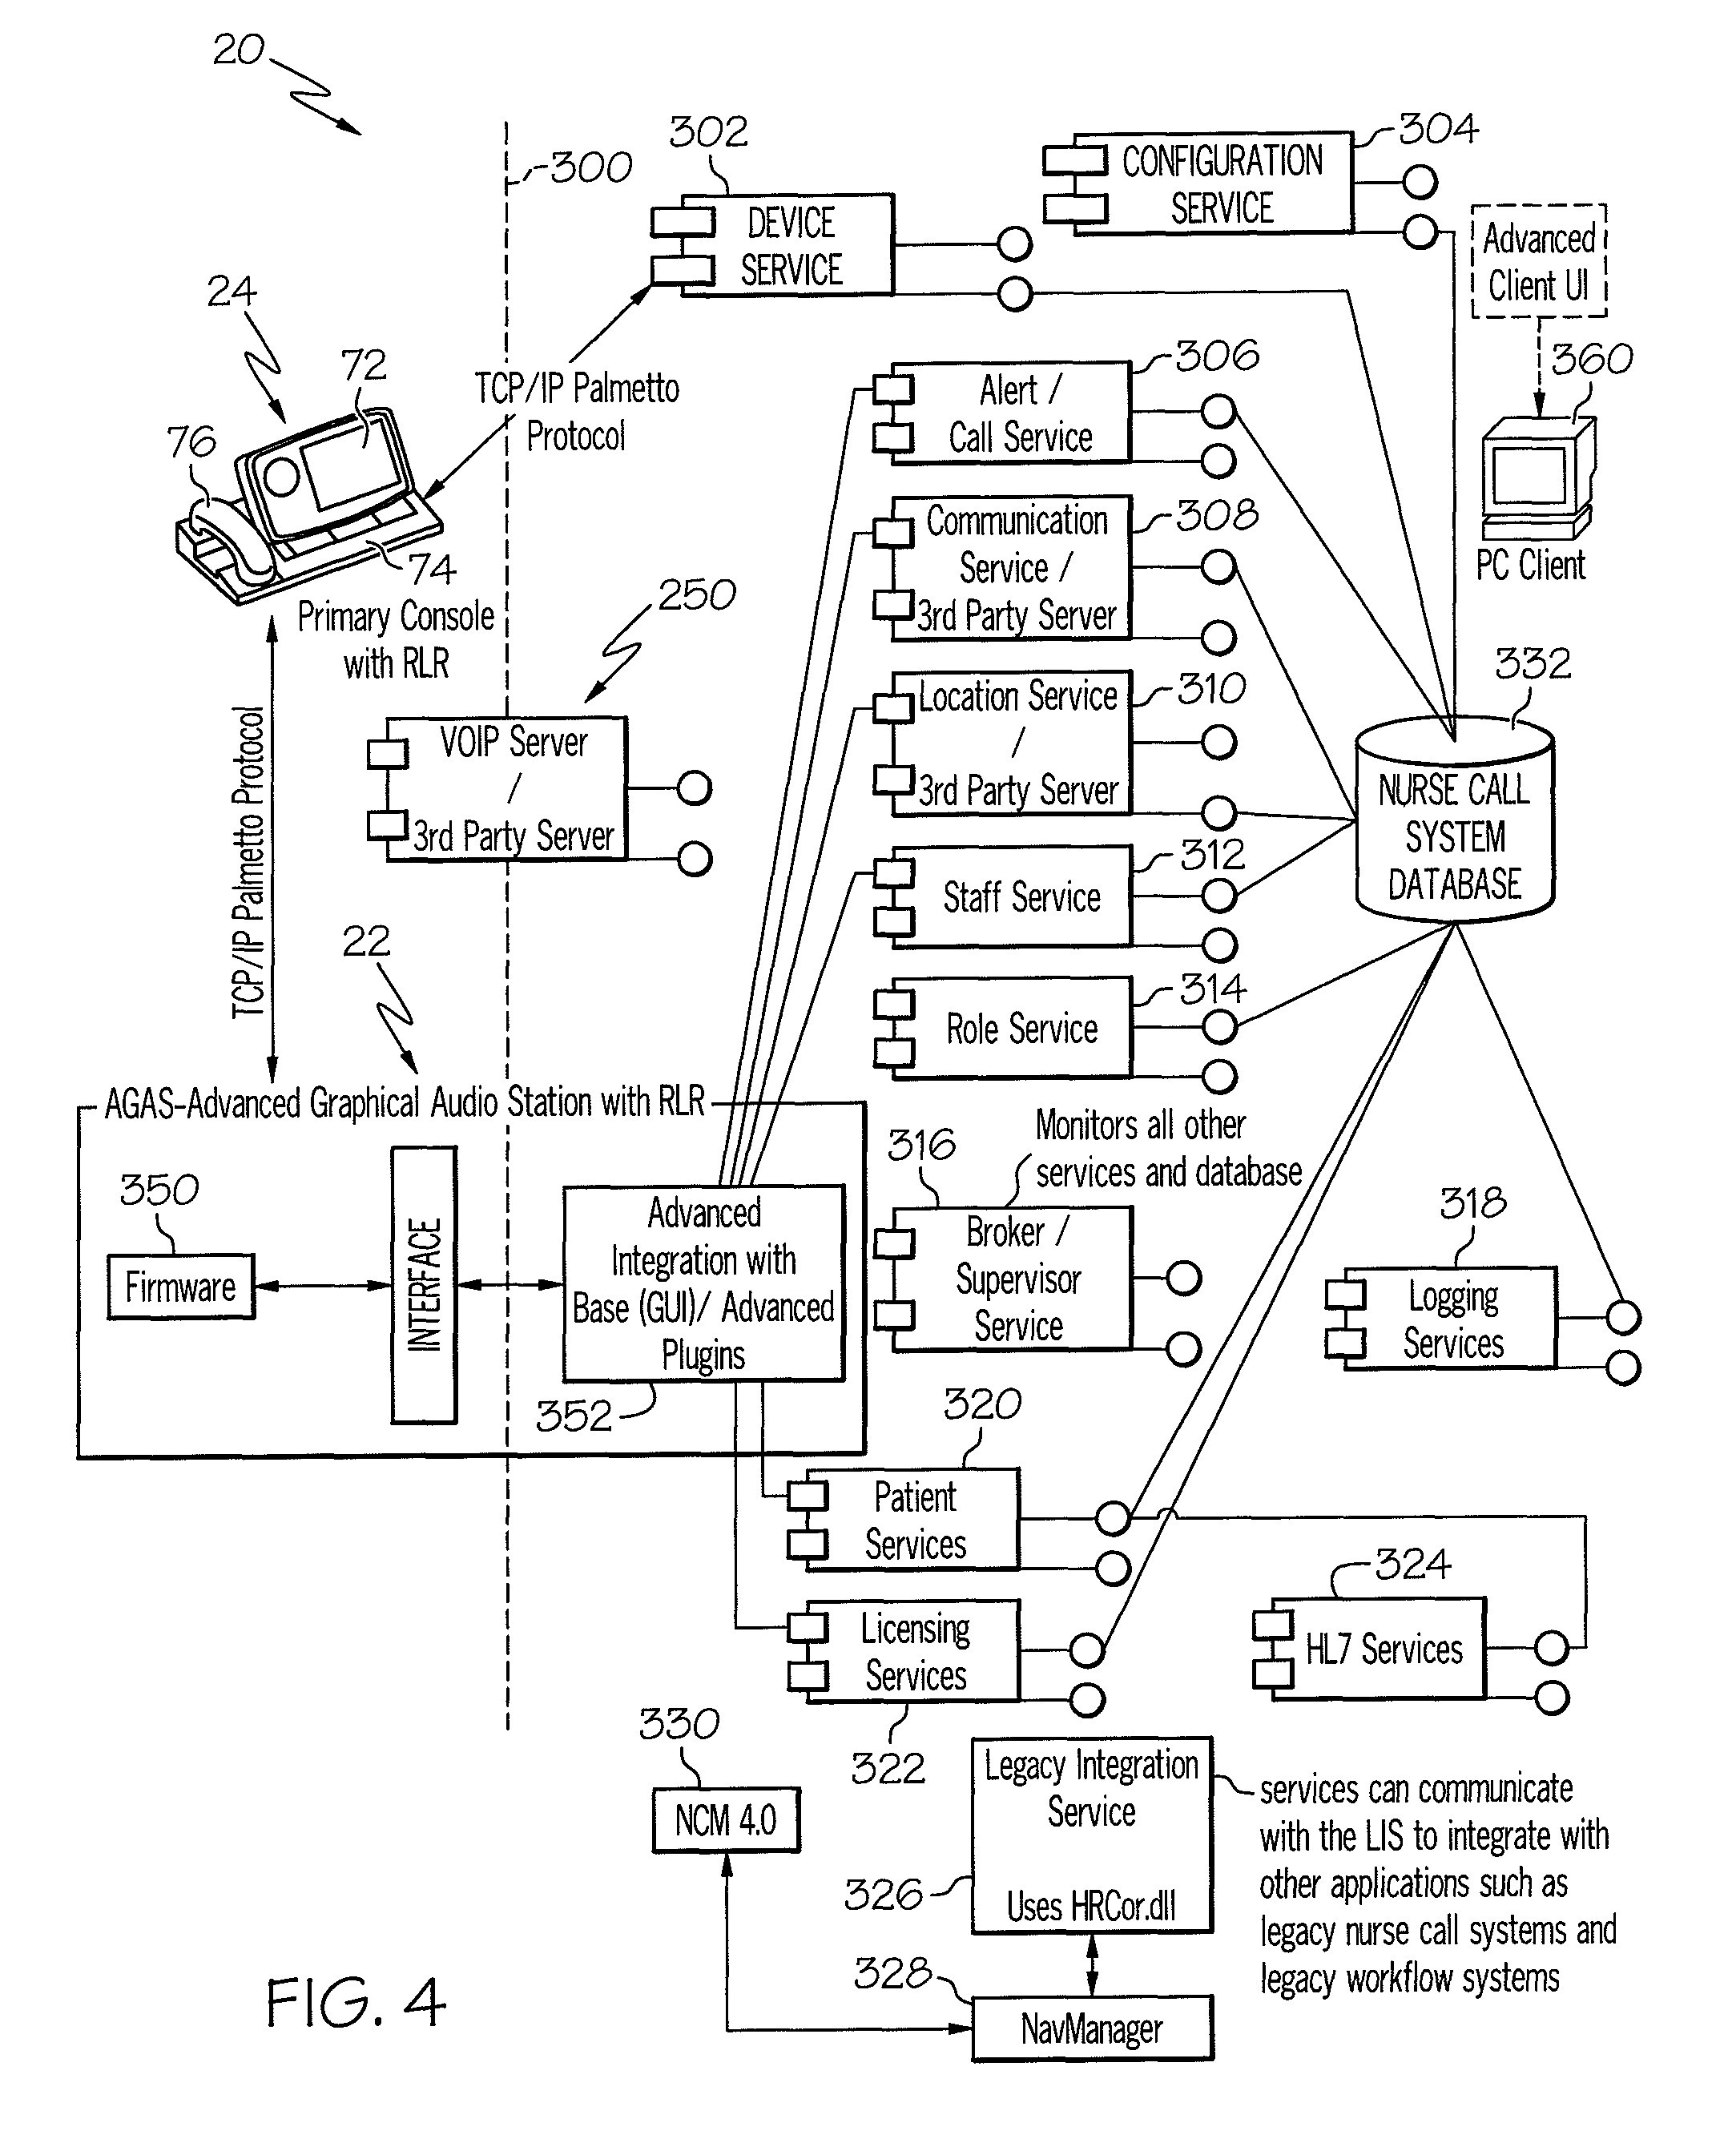 nurse call system wiring diagram Collection-Wiring Diagram for Nurse Call System New Nurse Call Systems Wiring Diagram 5-j